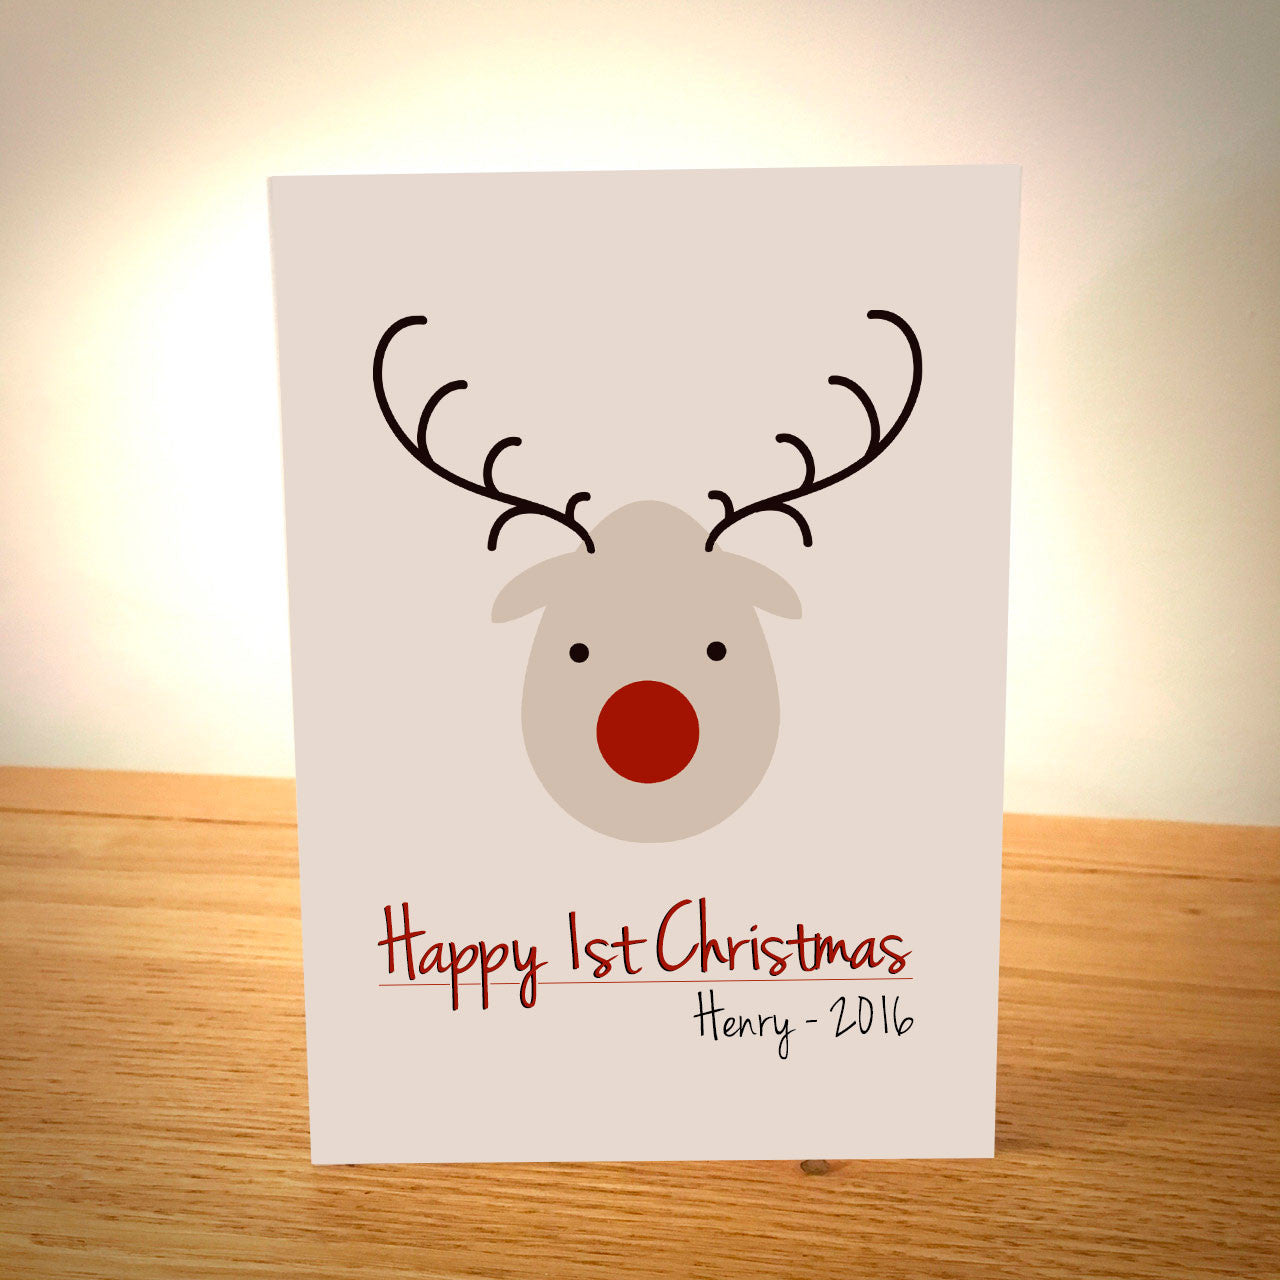 Personalised Family Christmas Cards Reindeer 300gsm Card Fast